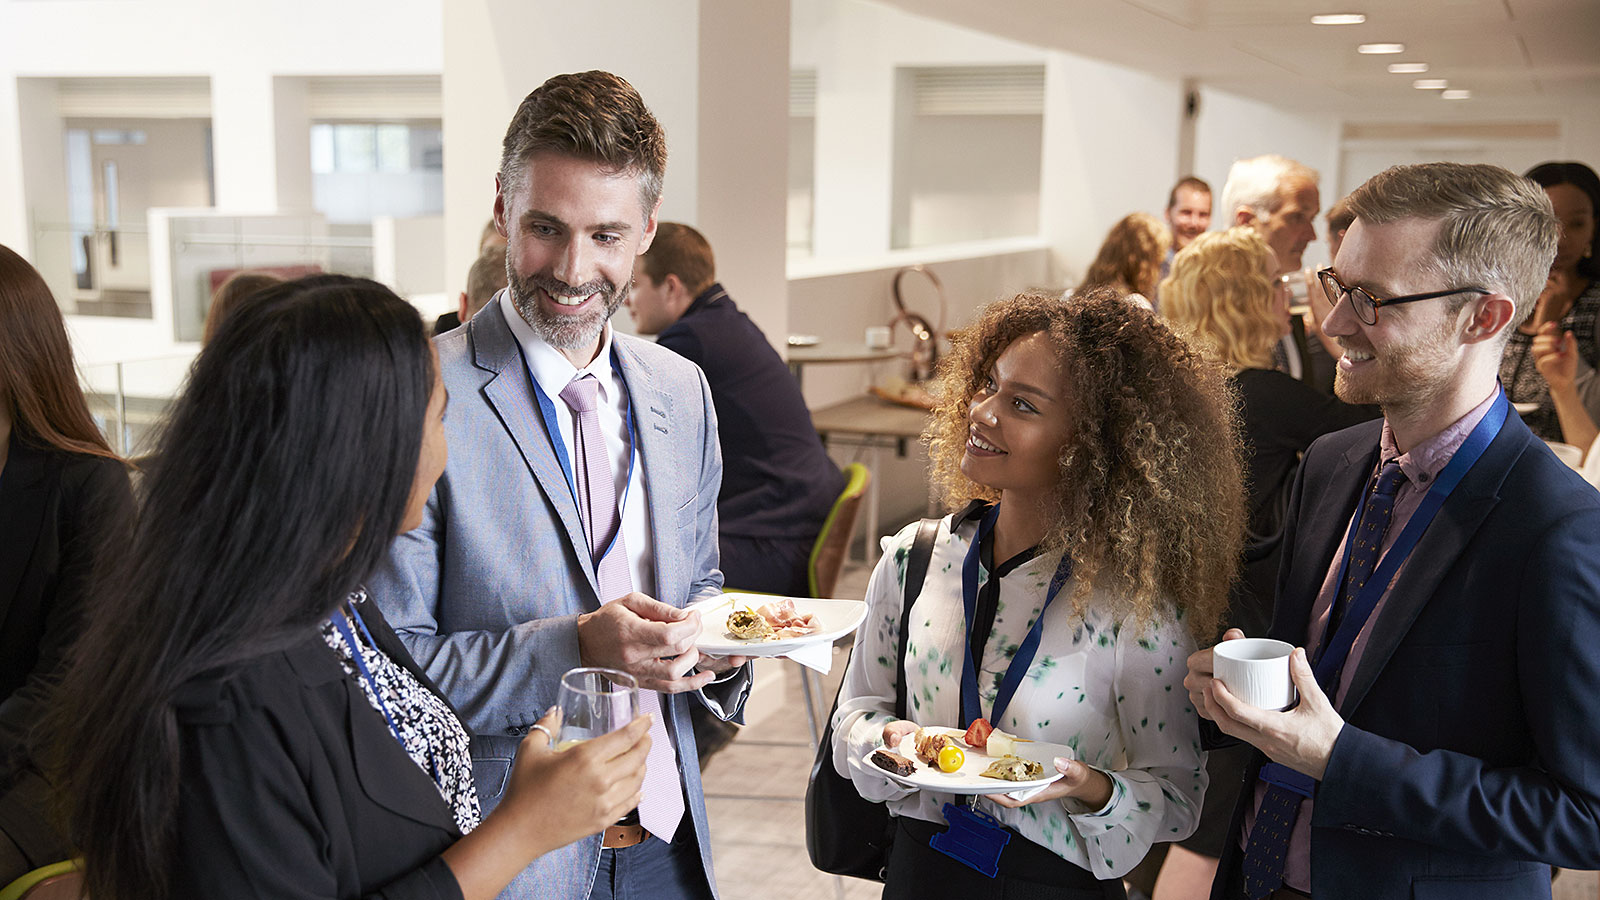 Ways to introduce yourself in person, at parties or networking events (and a few you should skip)